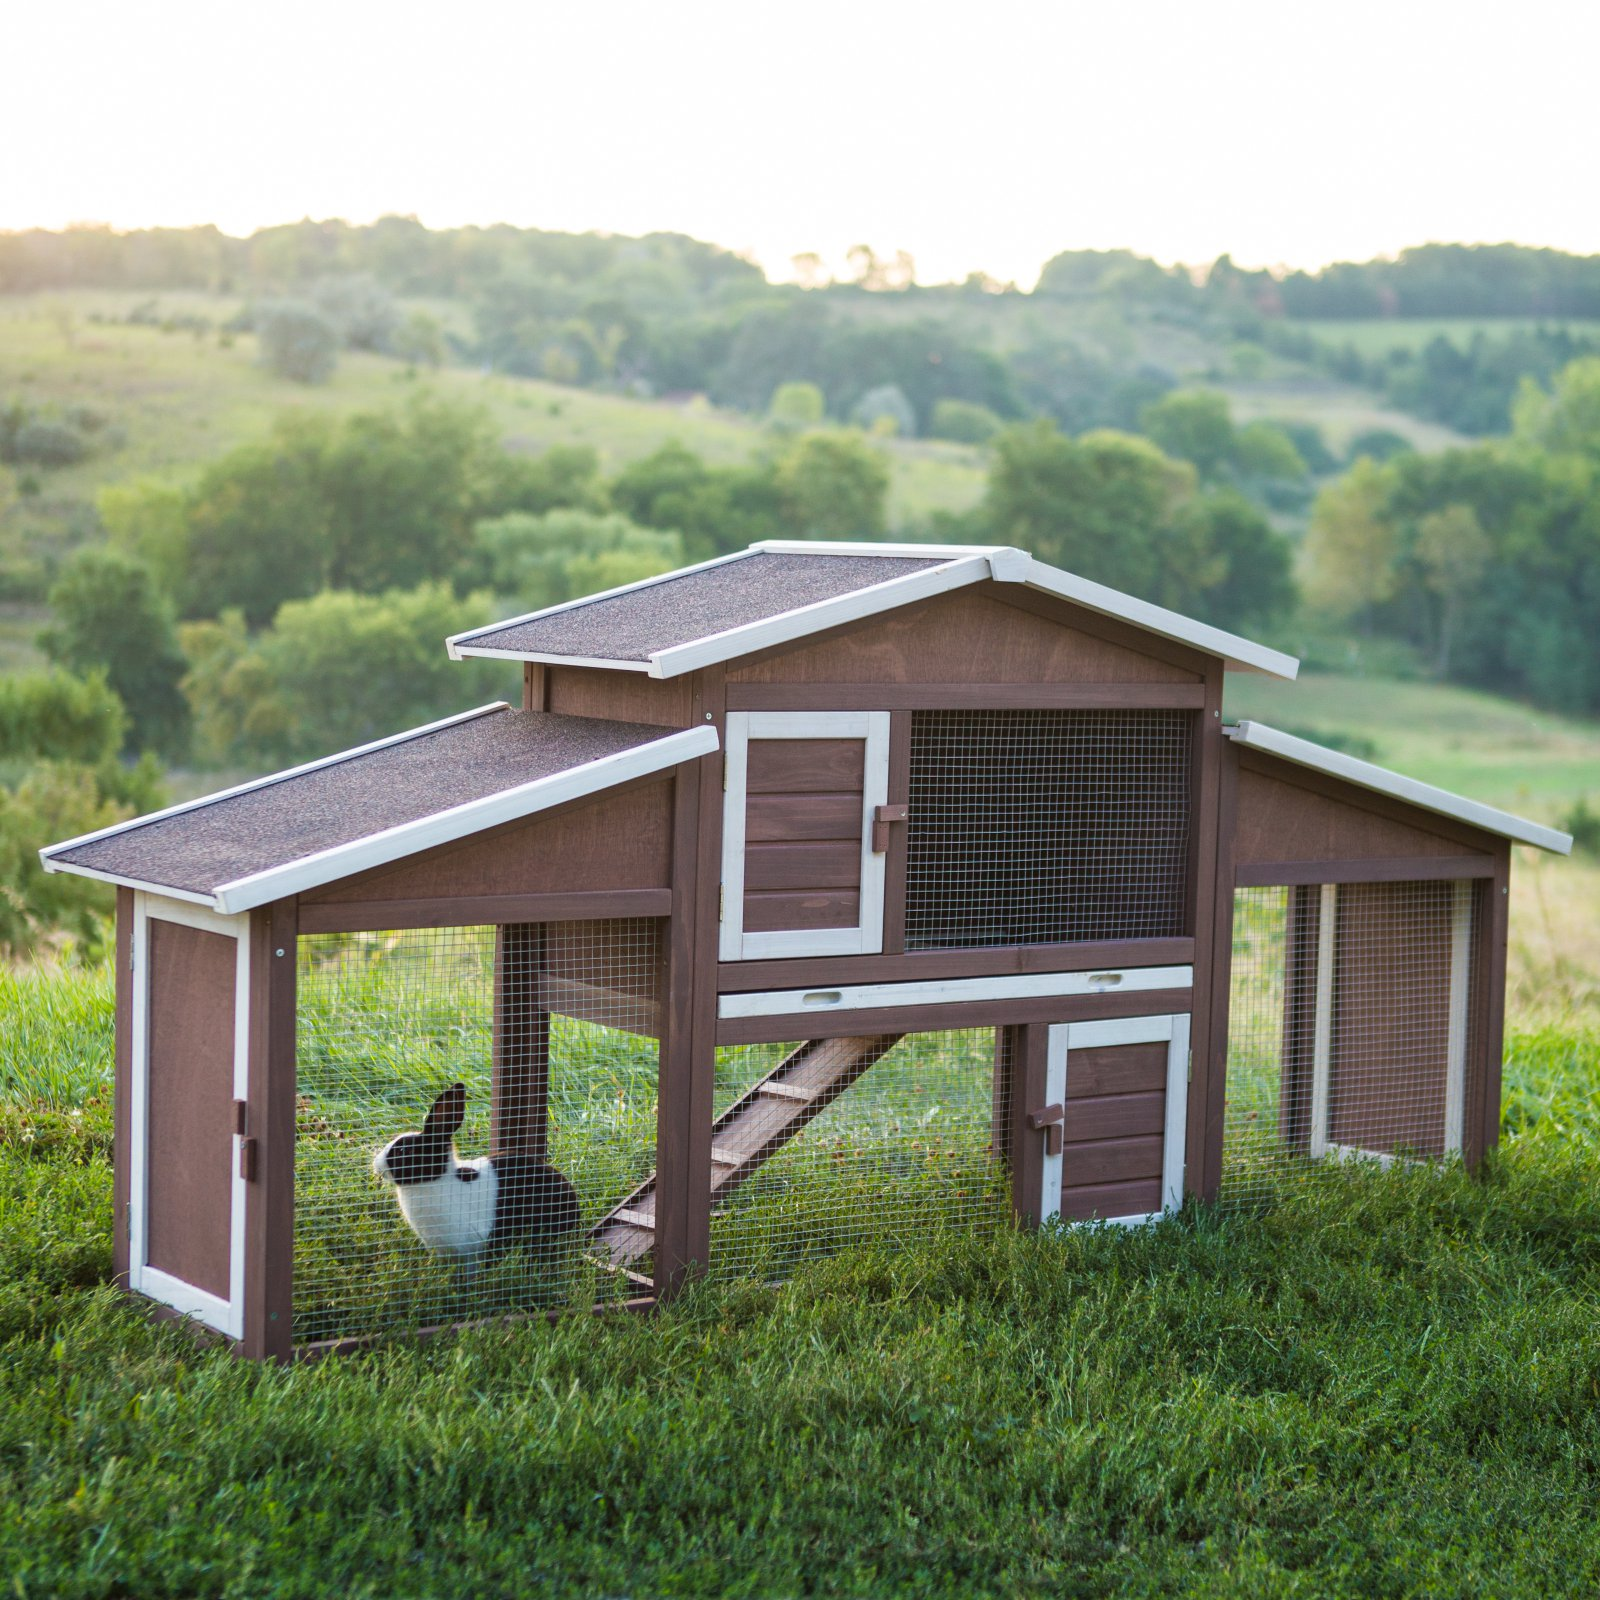 Boomer & George Dual-Use Rabbit Hutch Chicken Coop by